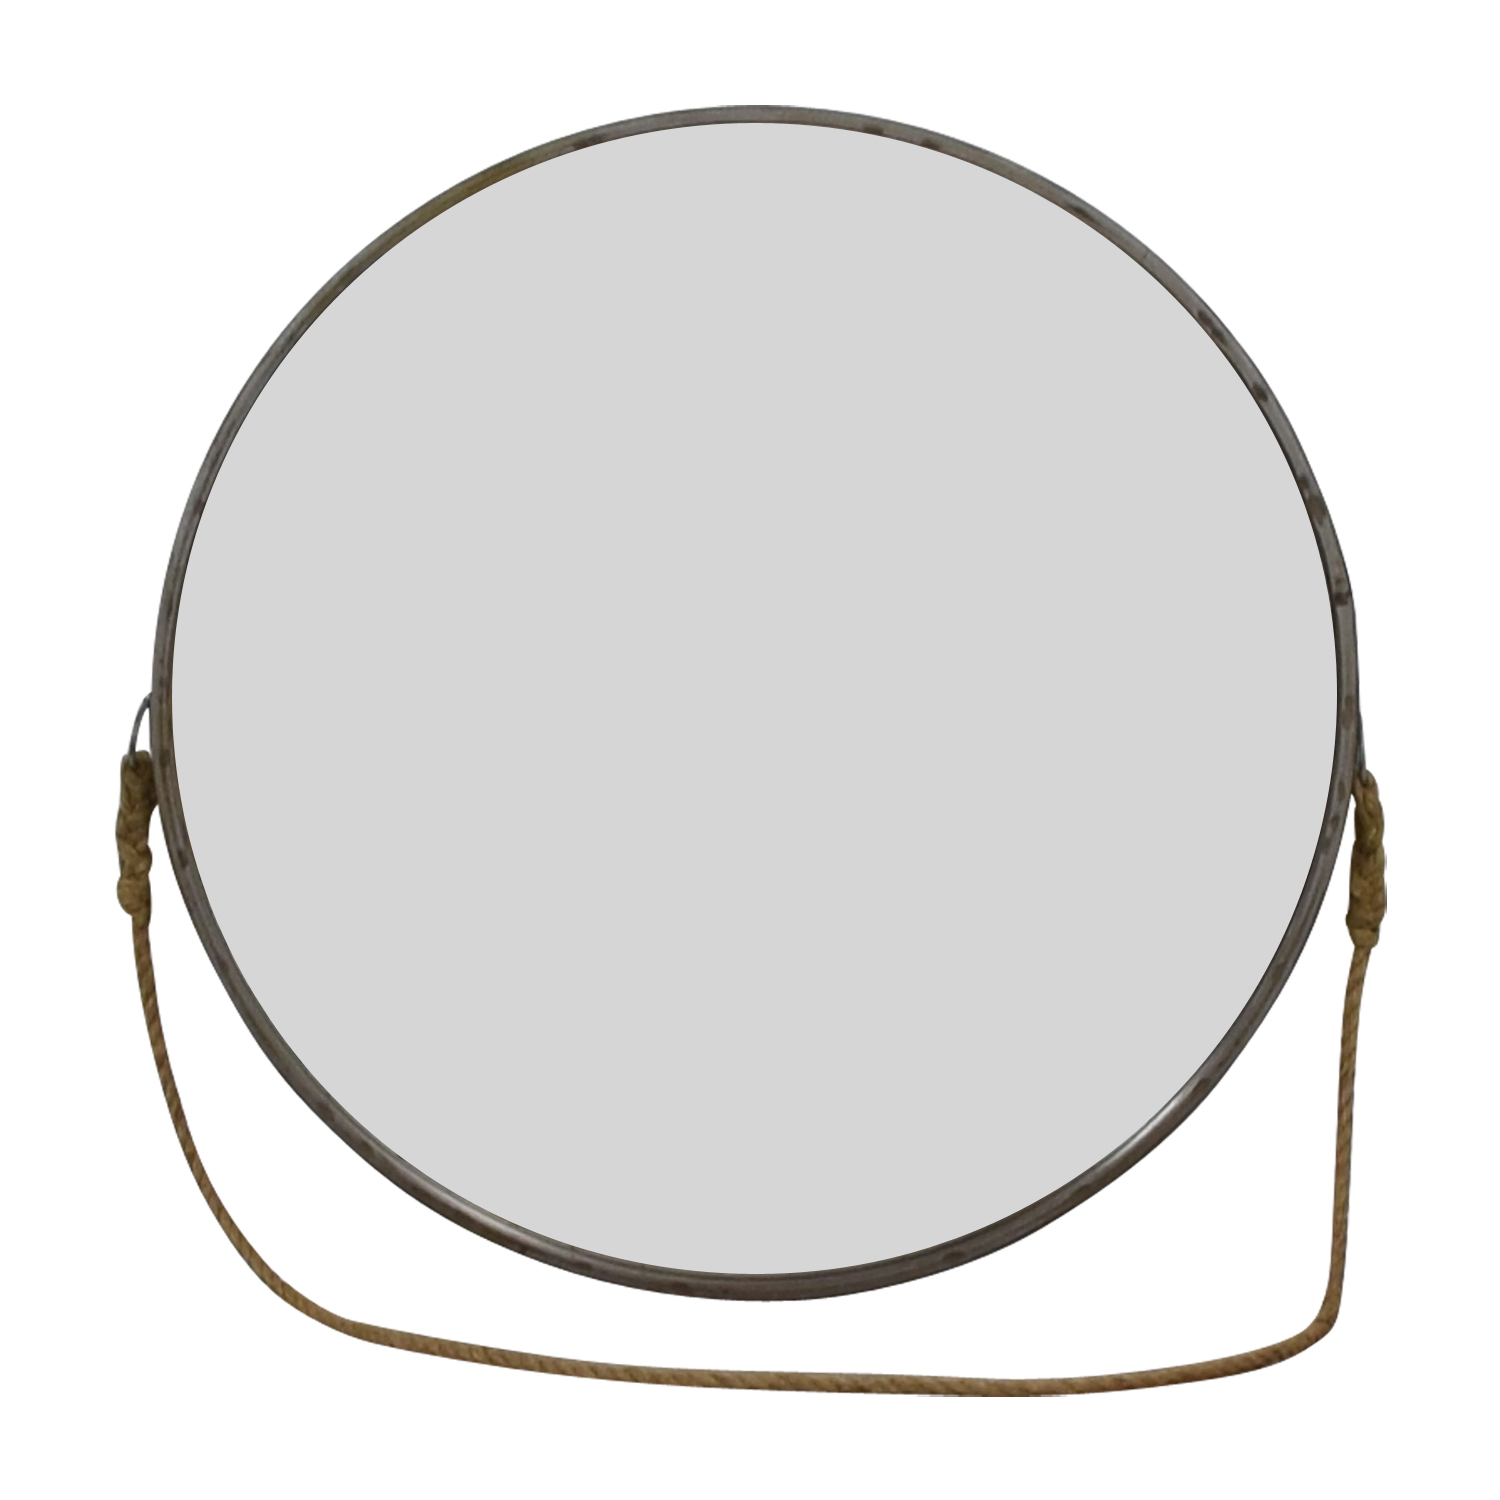 Bed Bath & Beyond Bed Bath & Beyond Round Hanging Mirror coupon